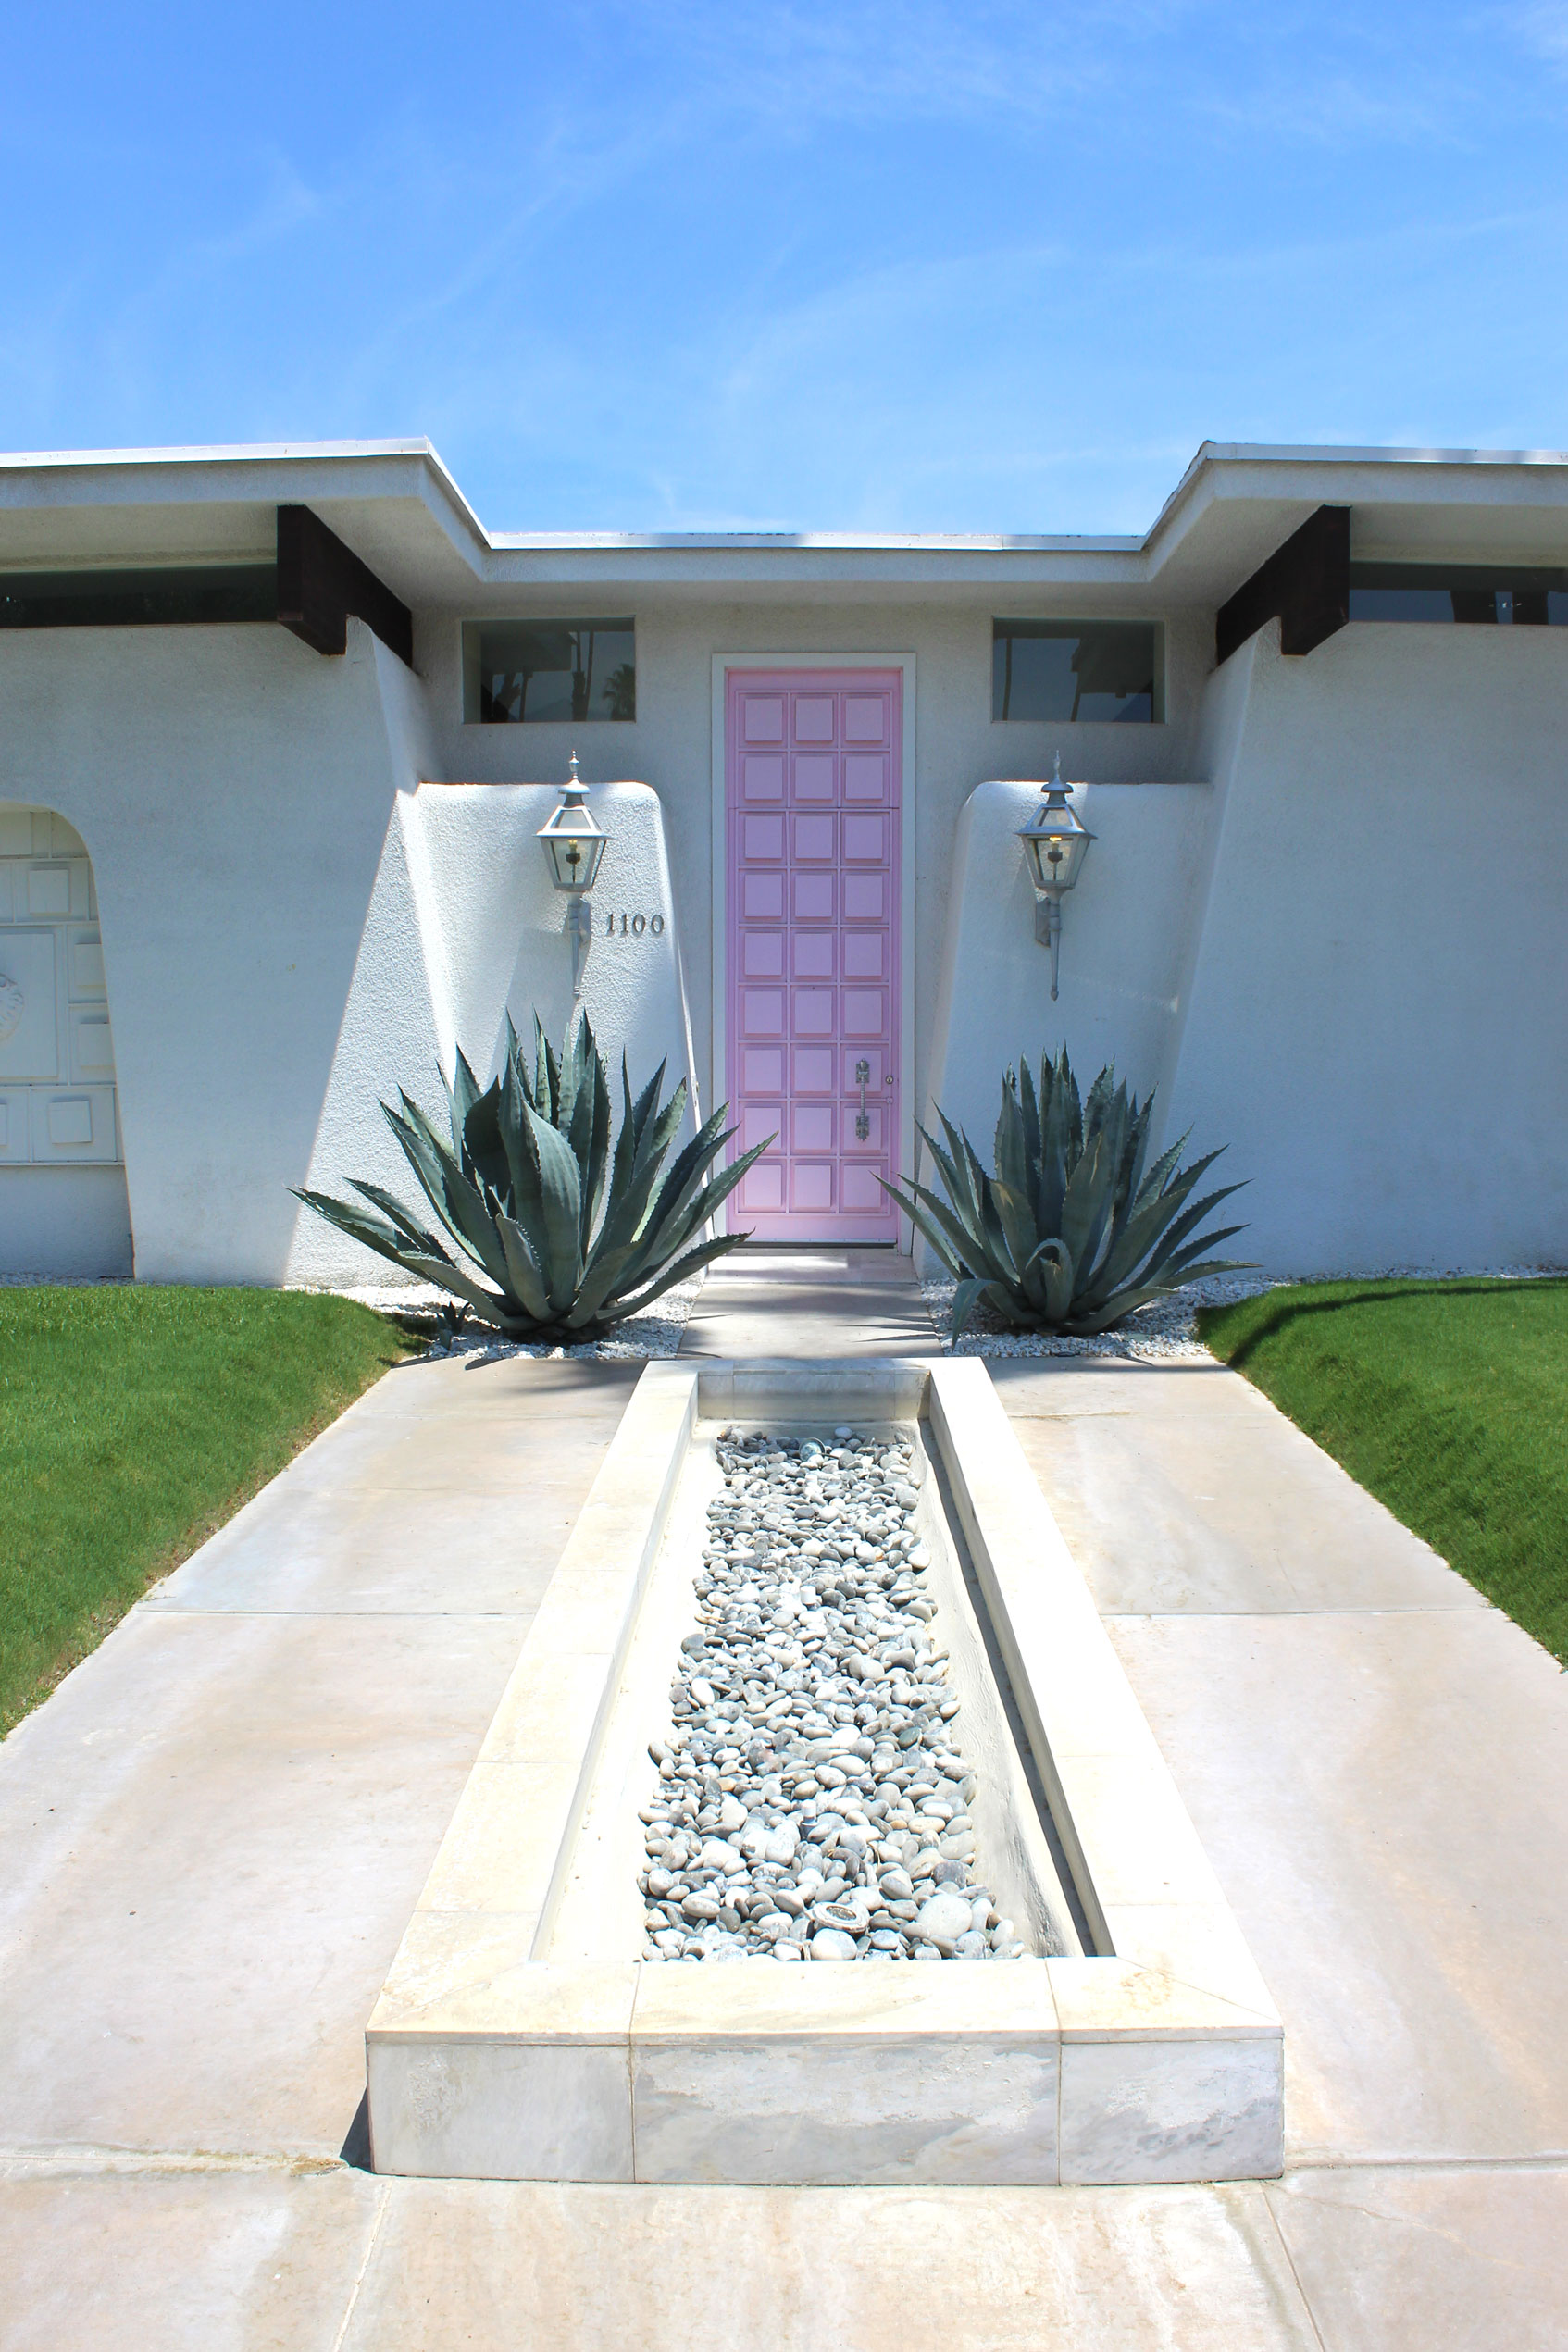 Pink door house in Palm Springs, California   Sundays and Somedays